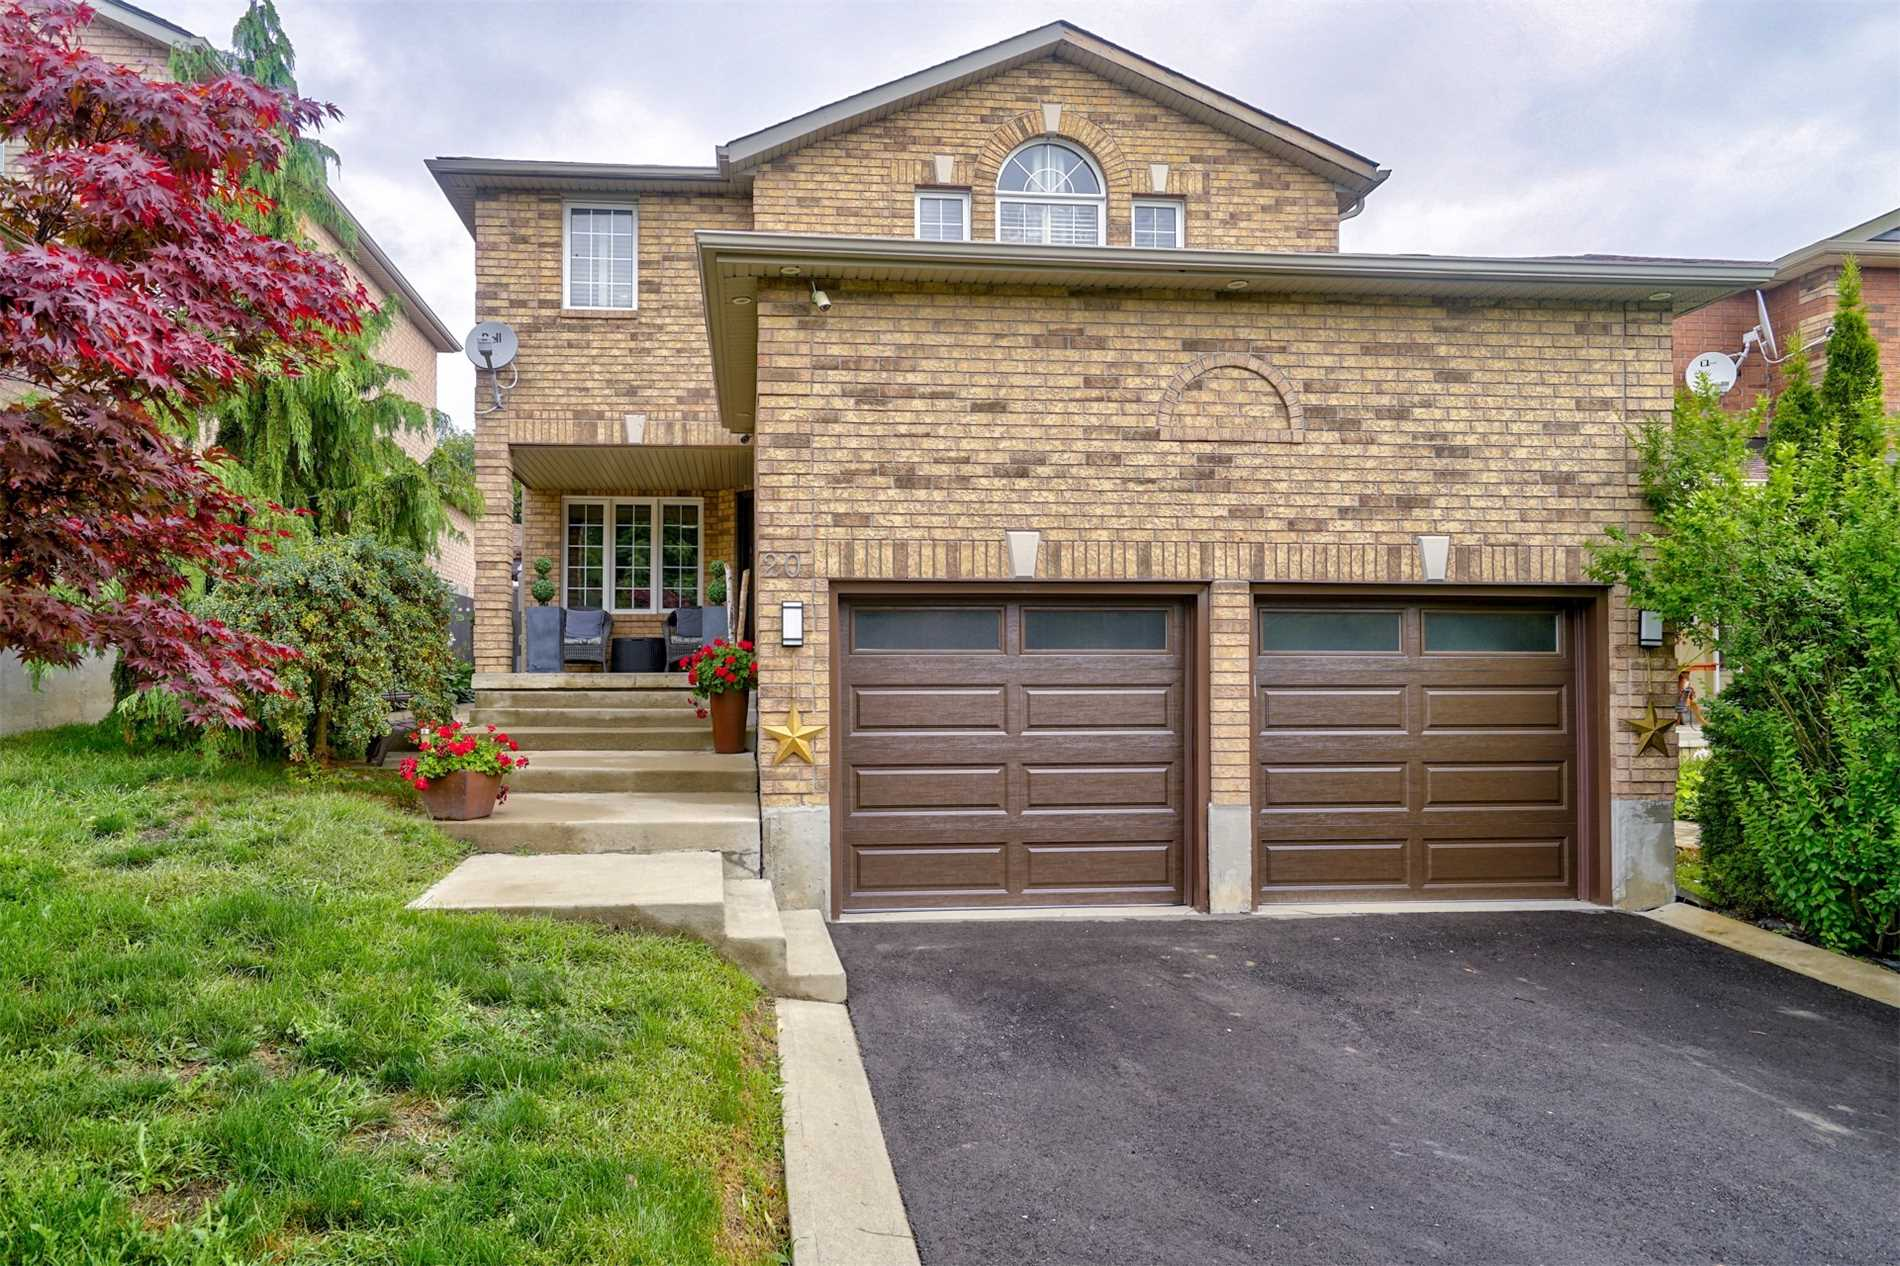 House for sale at 20 Roughley Street Bradford West Gwillimbury Ontario - MLS: N4312984